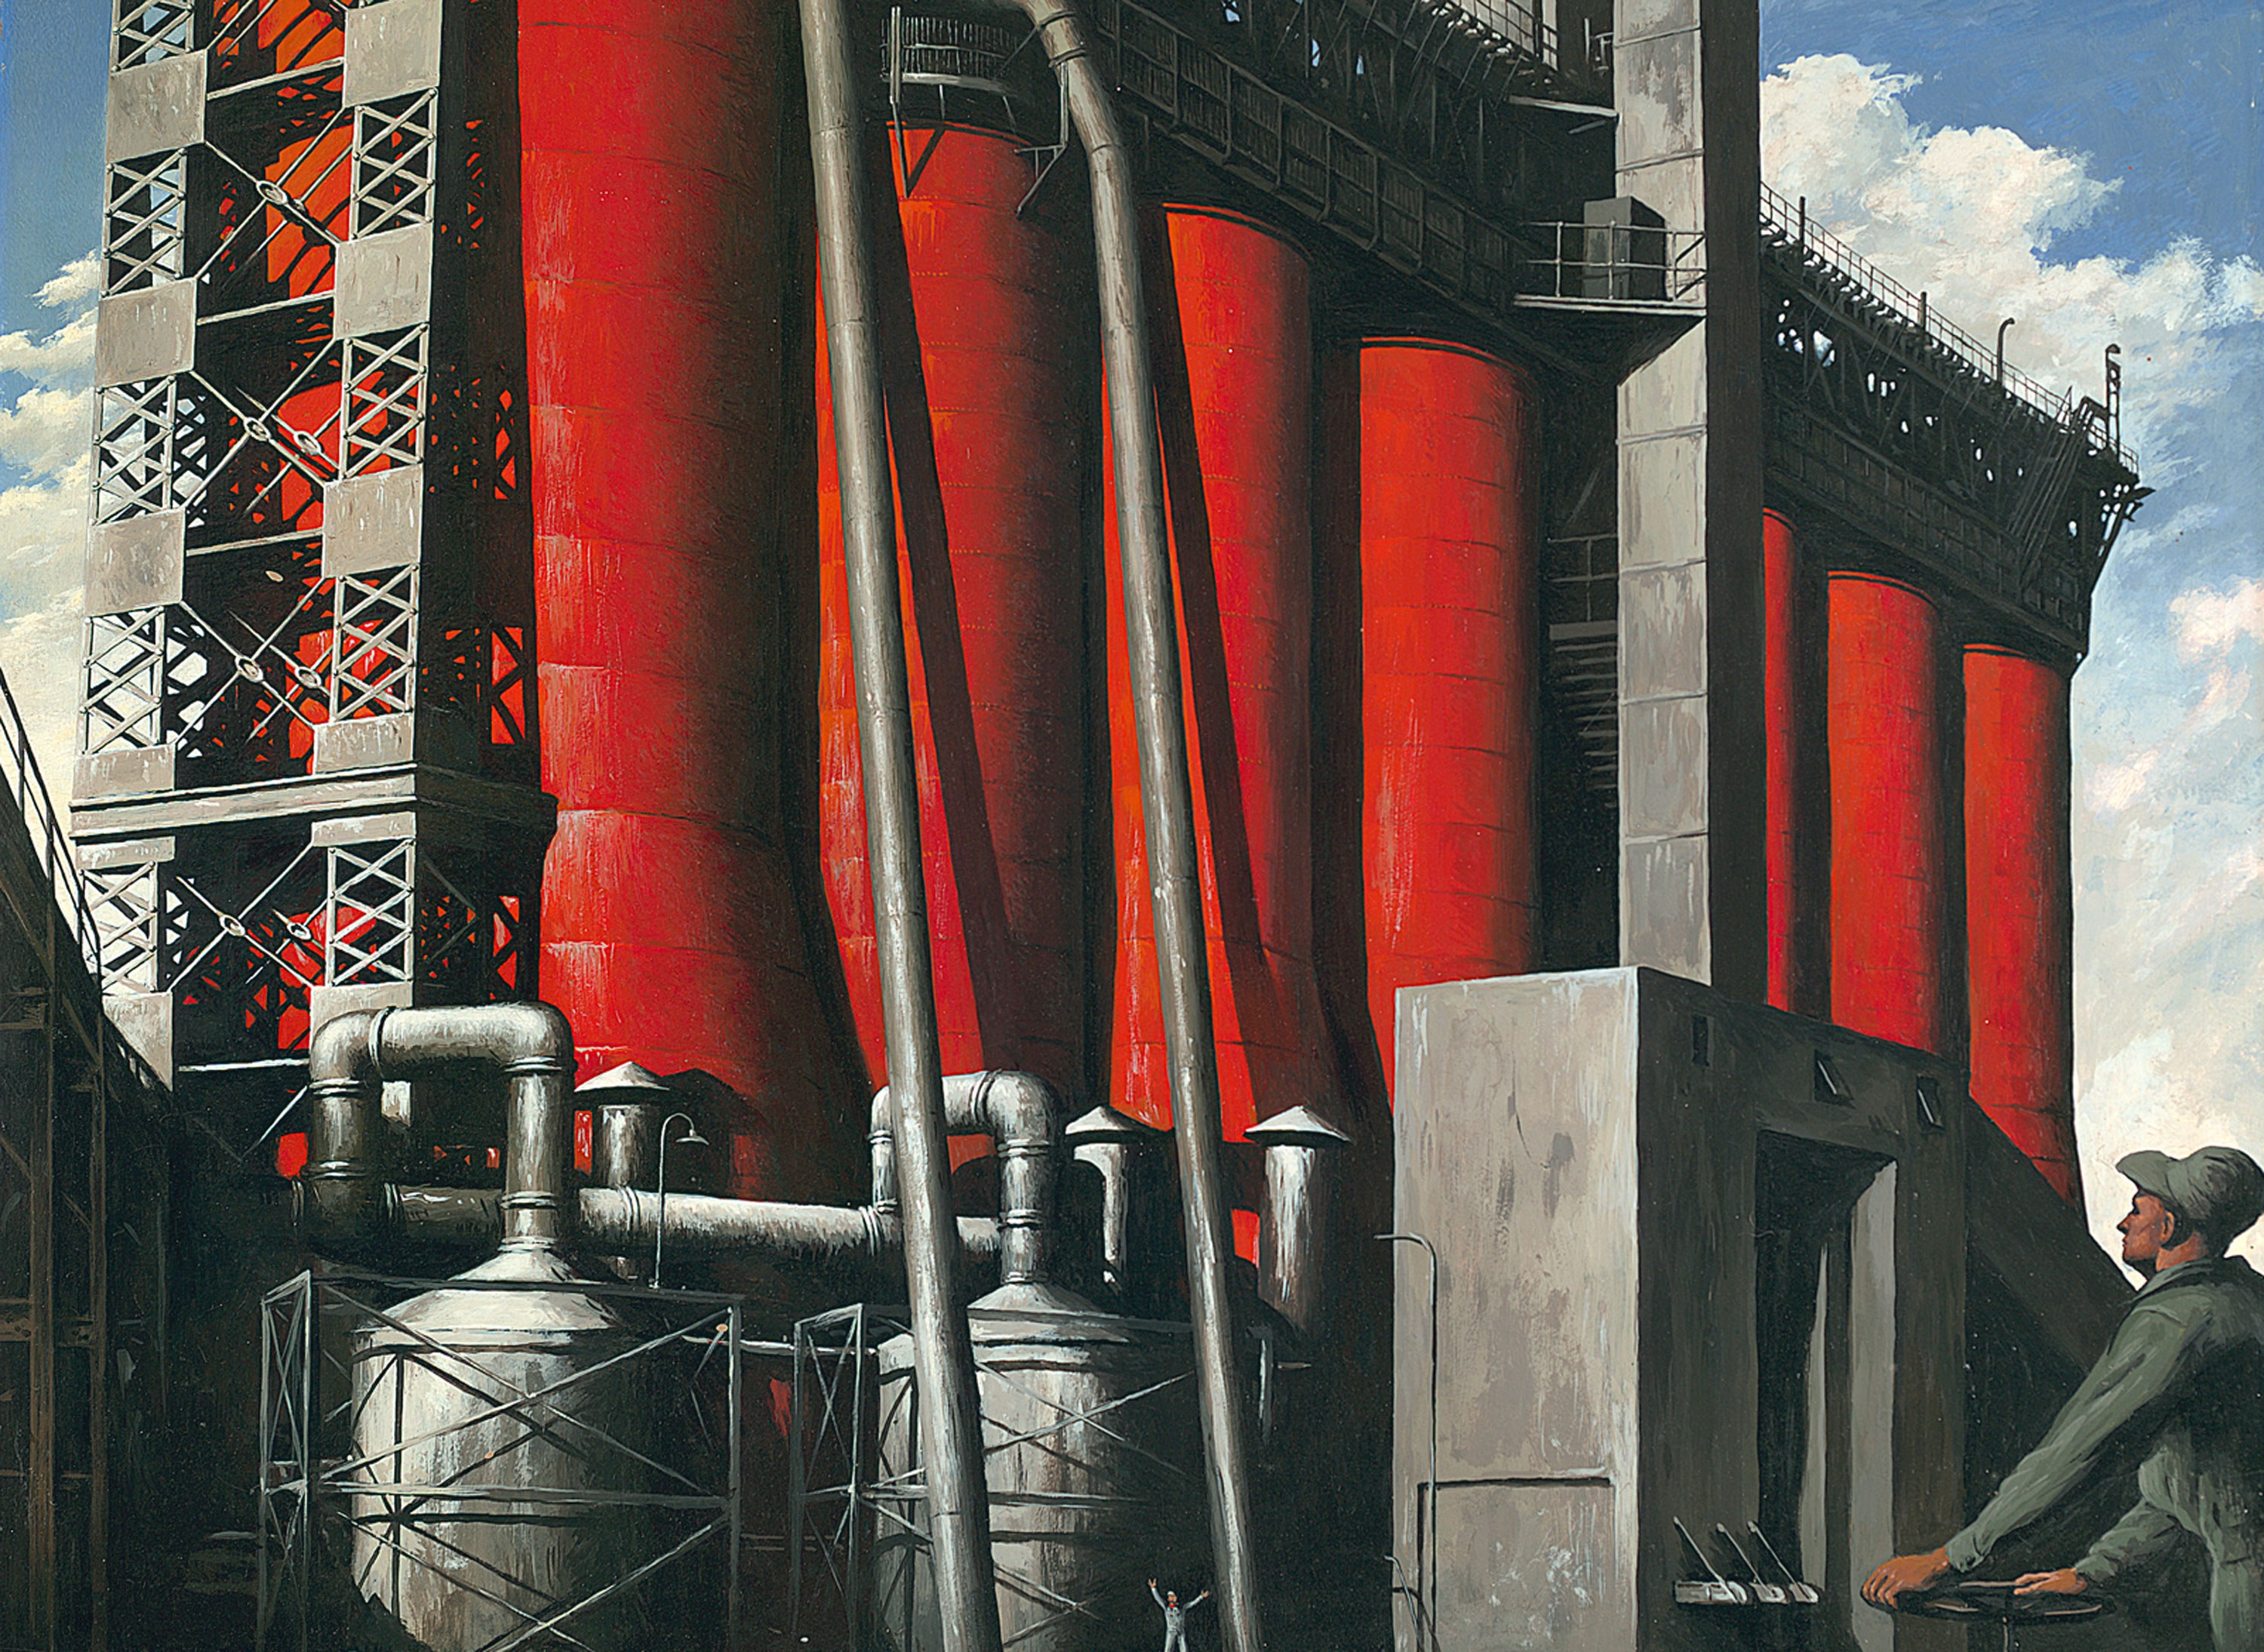 Robert Riggs, American, 1896 - 1970. Limestone Kilns, Wyandotte Chemical Company, Michigan, ca. 1947-48. Tempera on panel, 21 3/4 × 26 1/2 in. Museum purchase with funds from an anonymous donor in honor of Barbara and the late Bruce Mackey, 2011.322